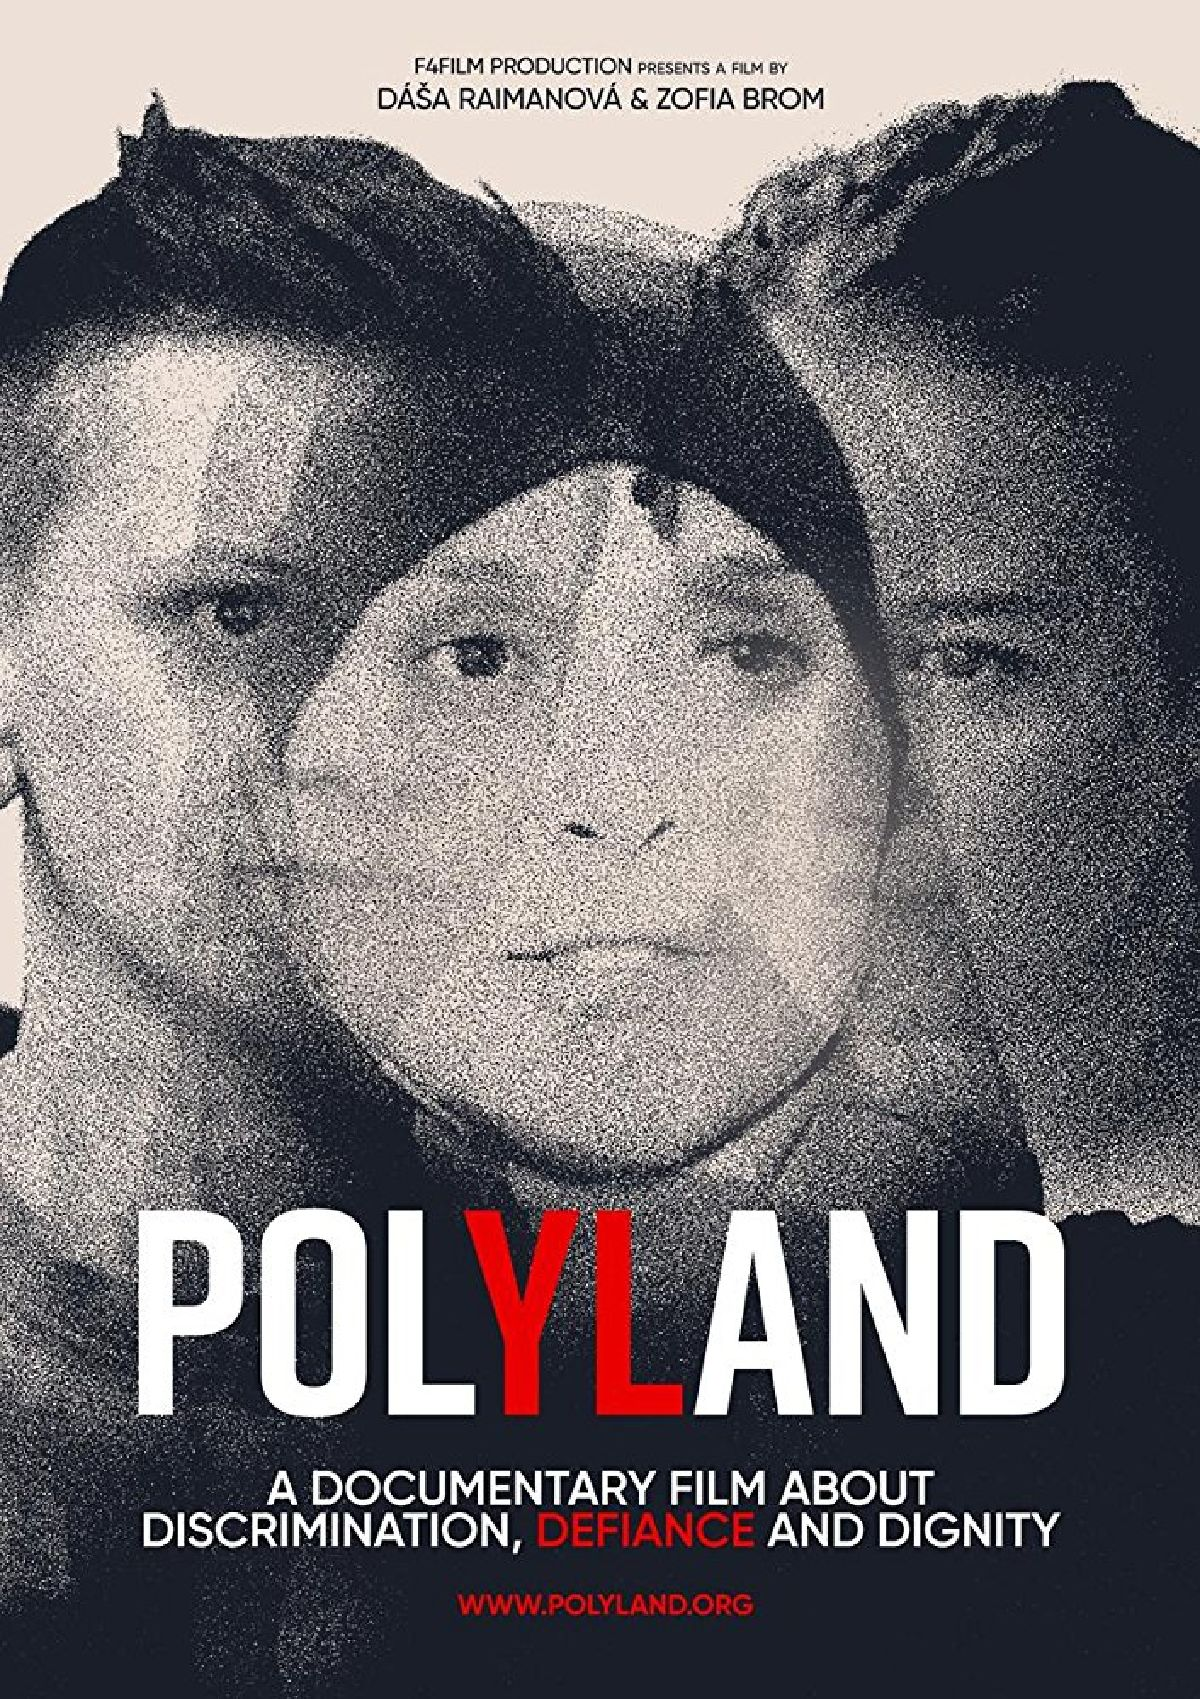 'Polyland' movie poster